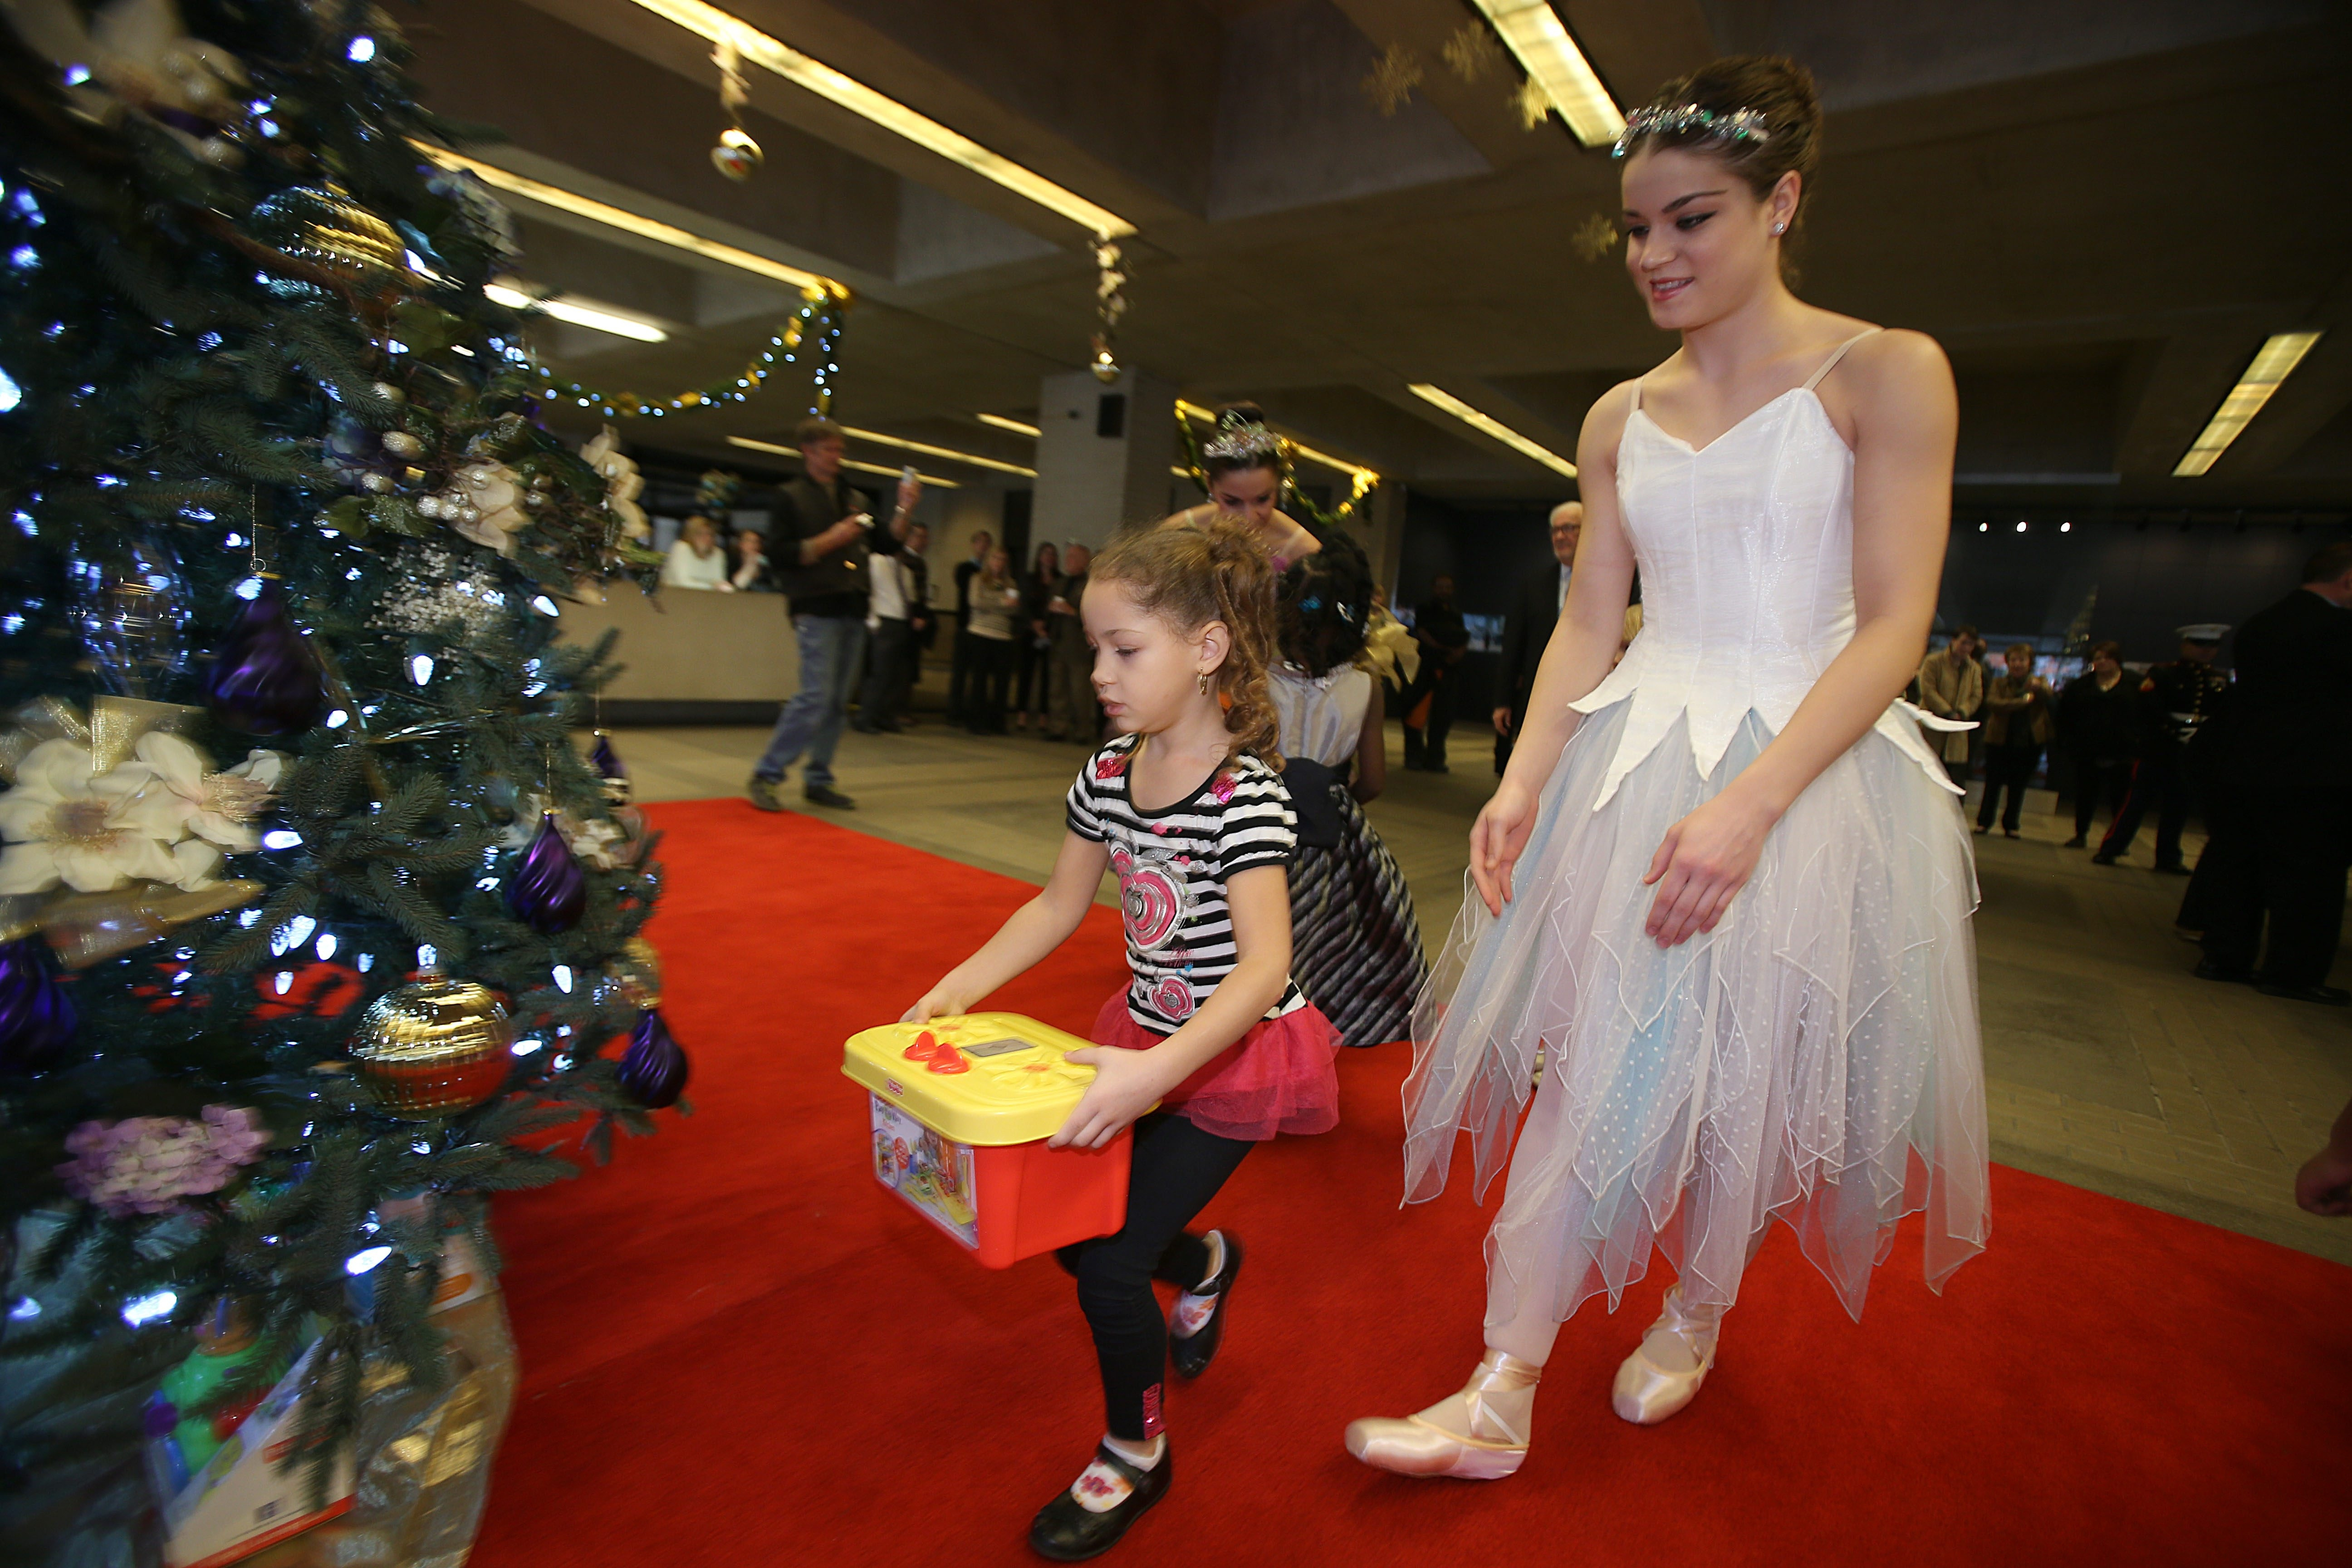 Houghton Academy student Amaree Workman, 5, is assisted by Neglia Ballet dancer Marie Keil, as she places a gift during the tree lighting ceremony in the lobby of the Buffalo News, Thursday.